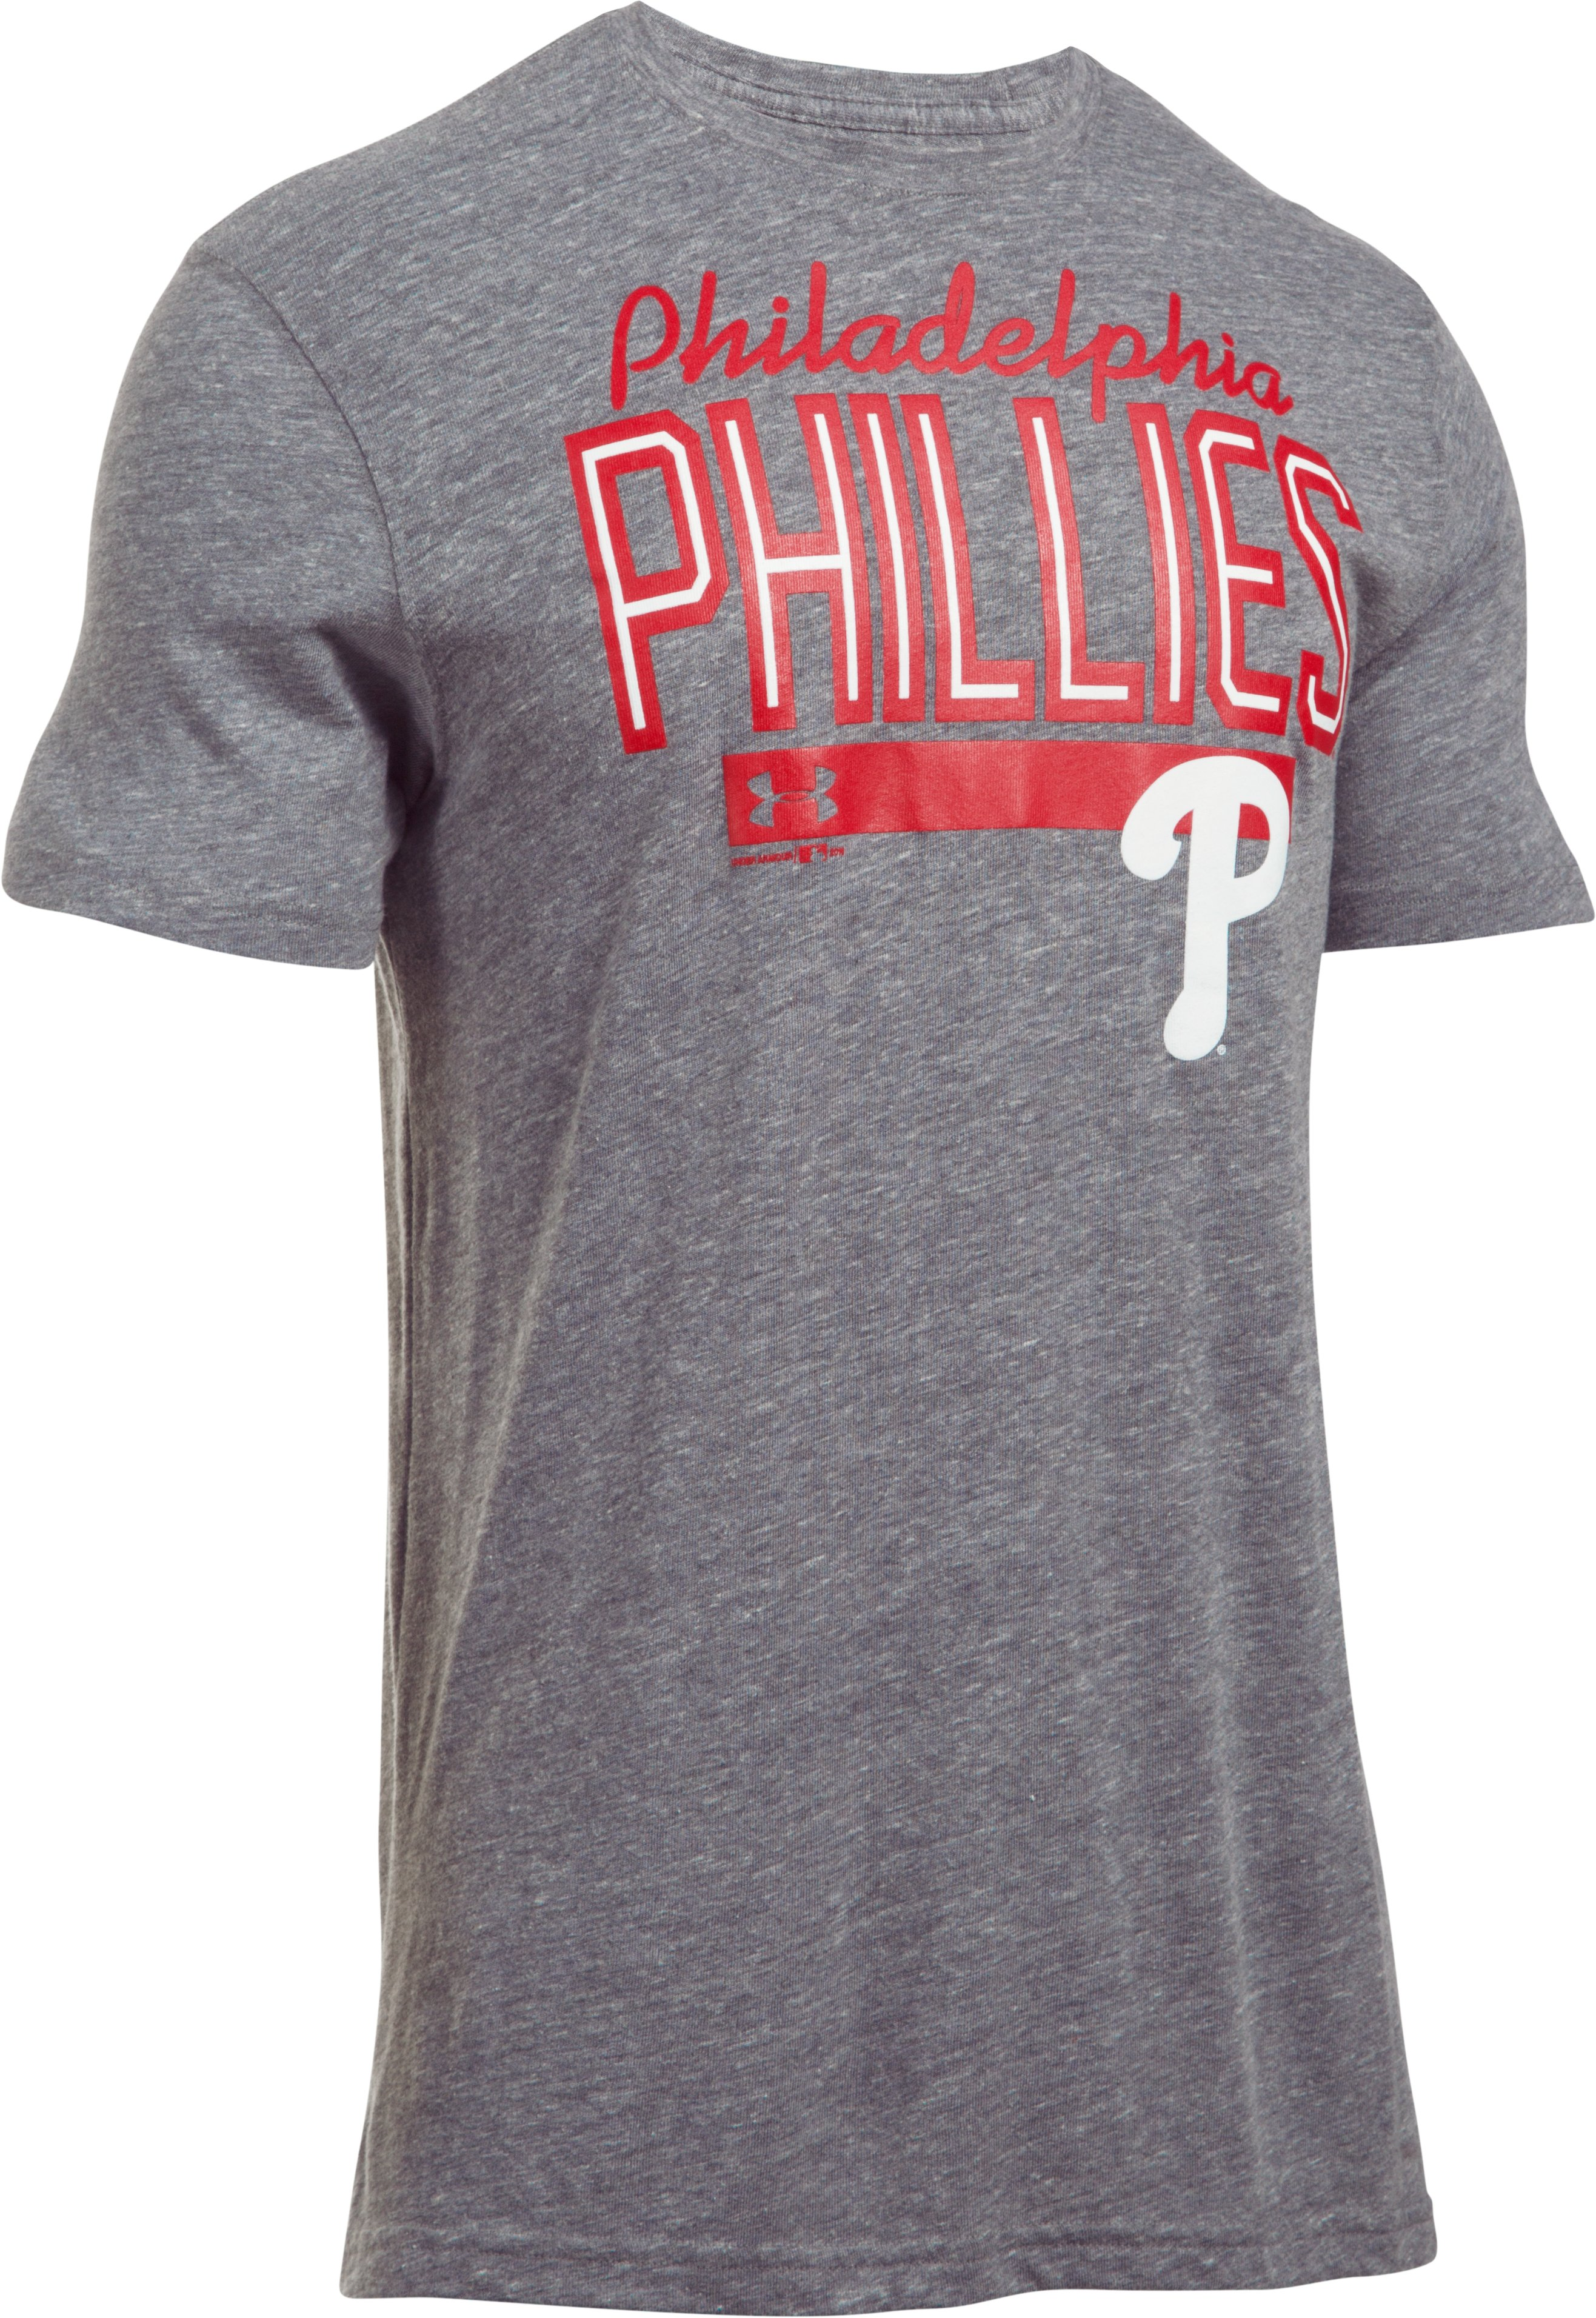 Men's Philadelphia Phillies Tri-blend T-Shirt, True Gray Heather, undefined